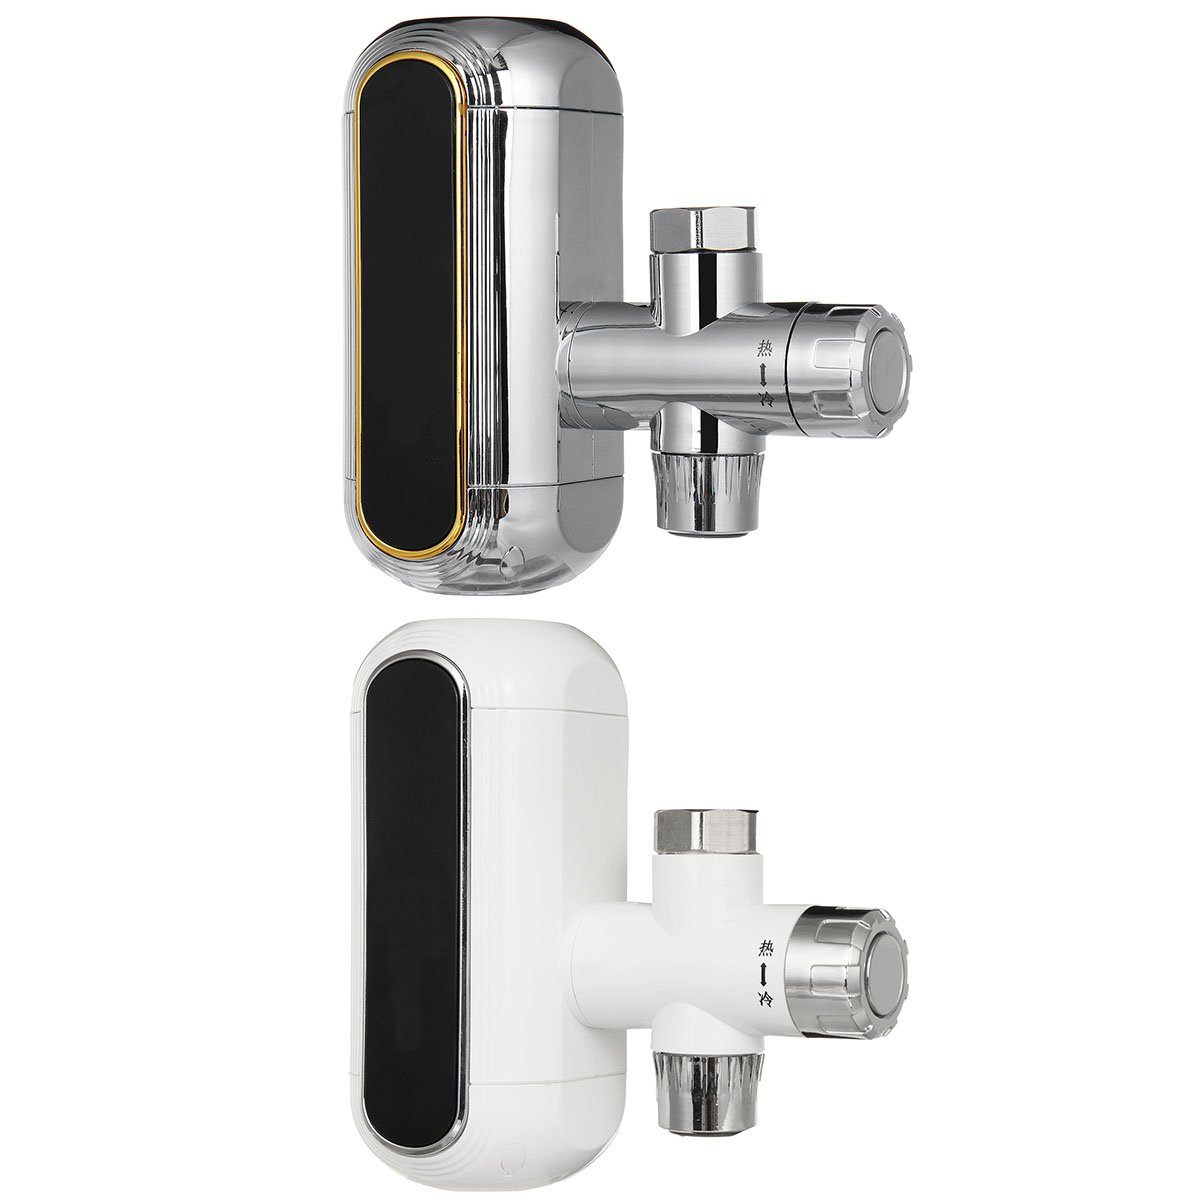 cheapest Home 3000W Instant Electric Faucet Hot Water Electric Water Heaters Under Inflow Side Water Without Leakage Protection